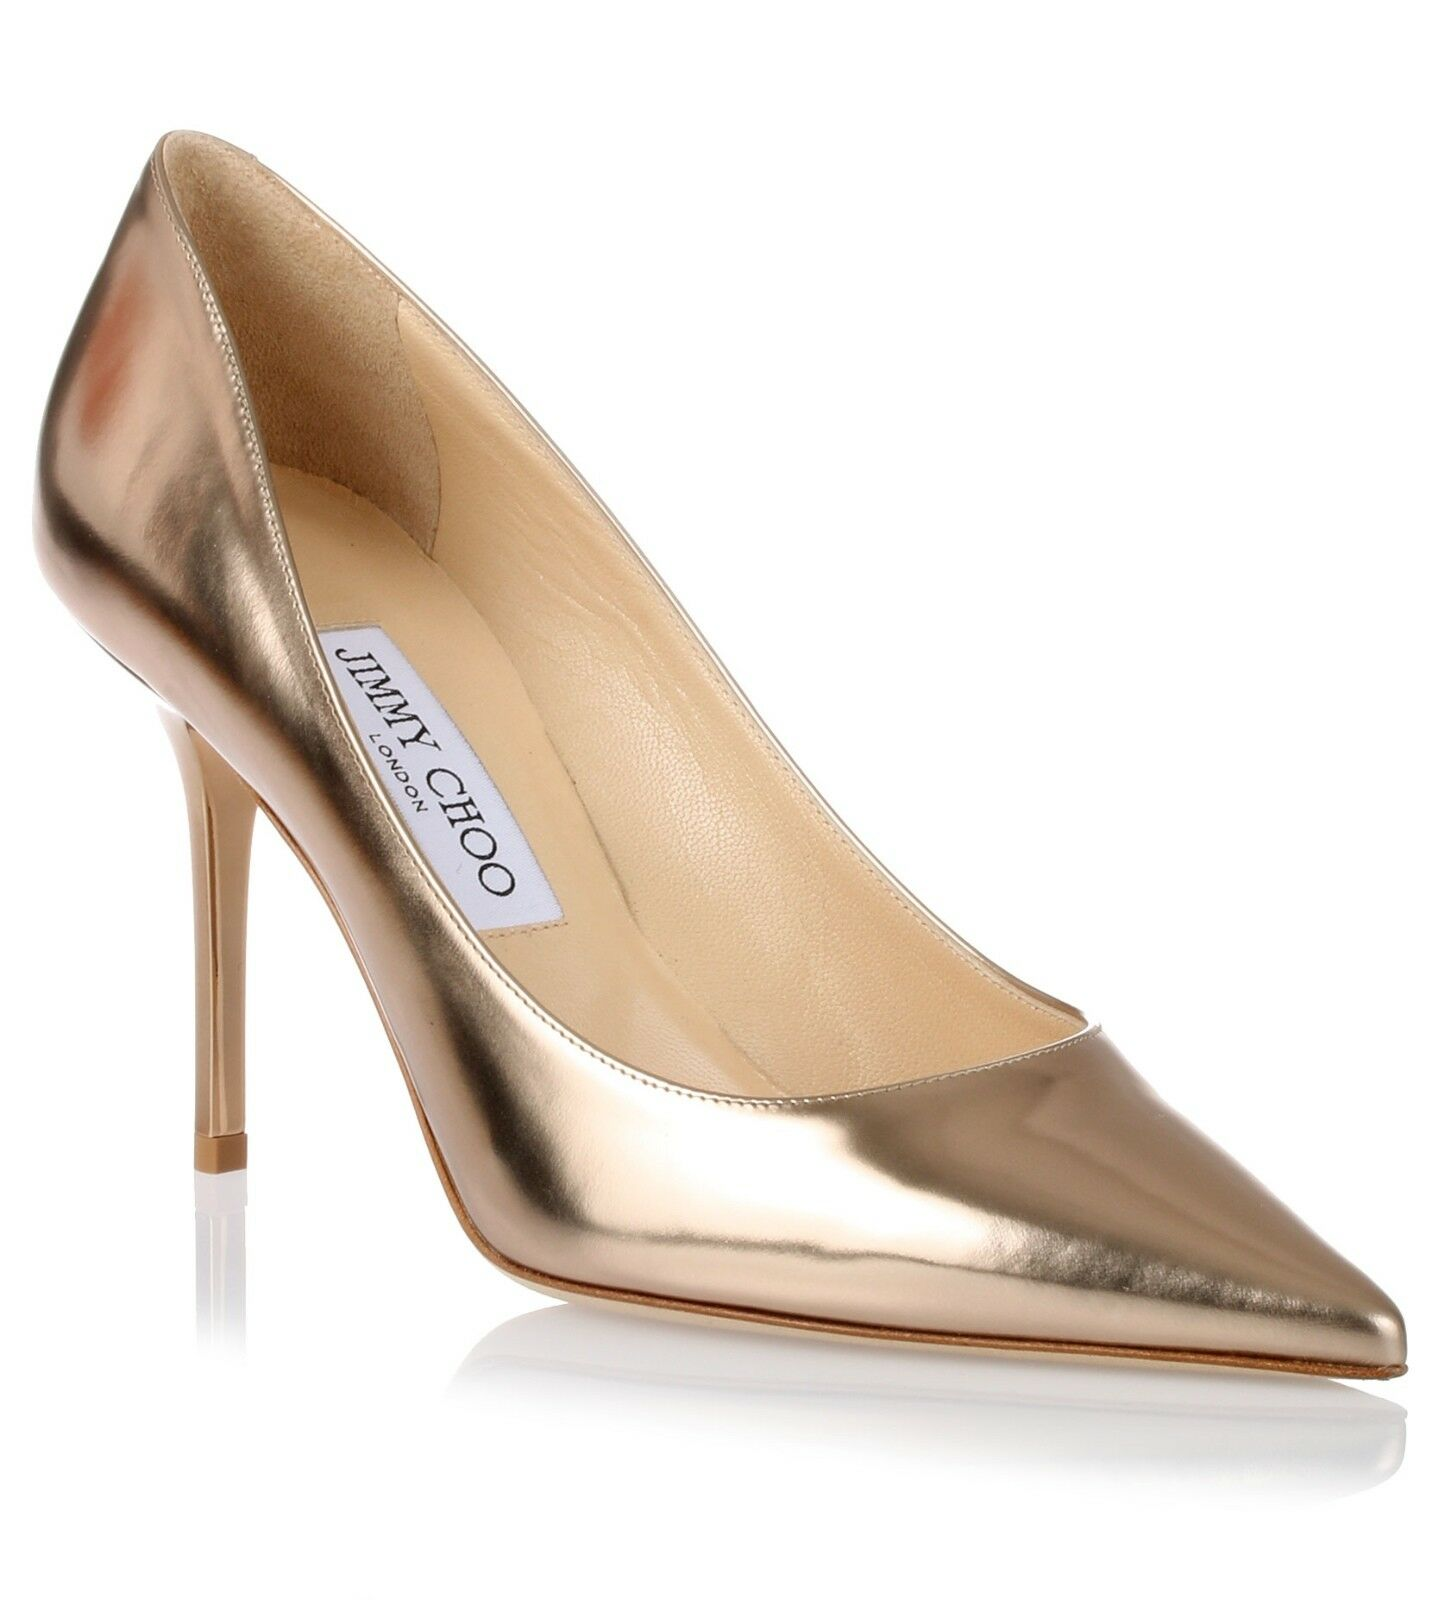 595+NEW Jimmy Choo Agnes Nude Mirror Leather 85MM Pump Sz 40 US 9.5